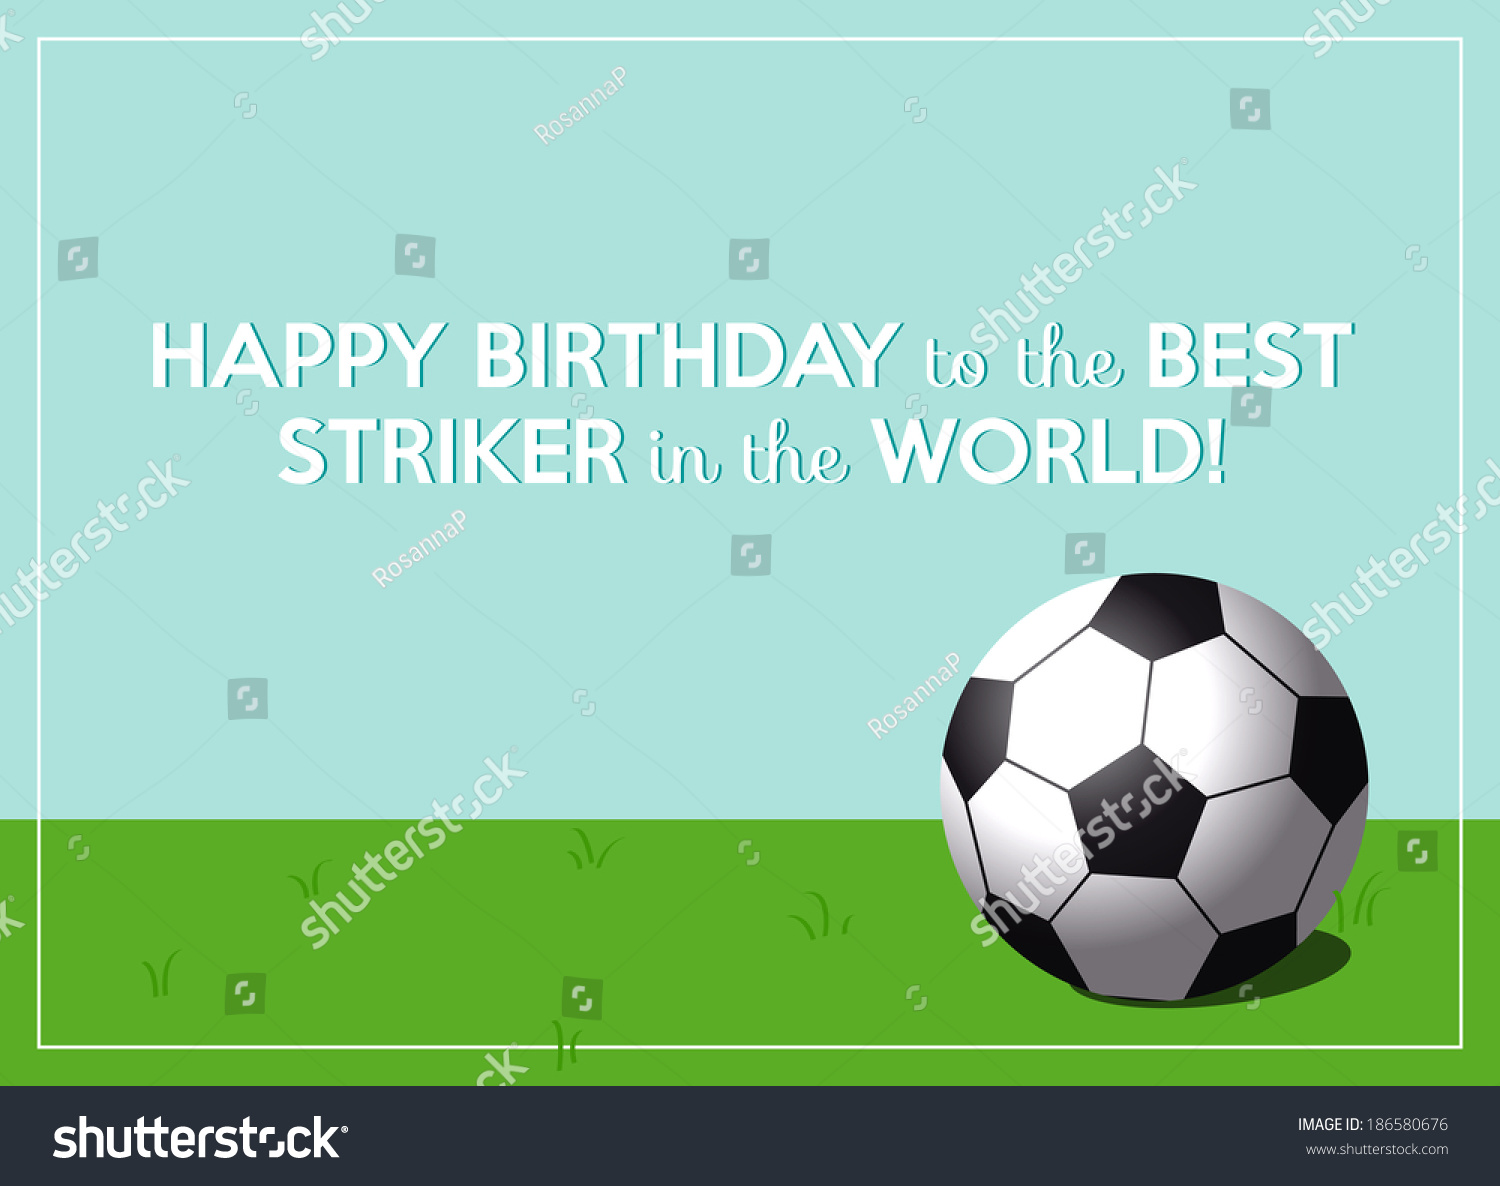 Birthday Greeting Card Best Striker World Stock Vector 186580676